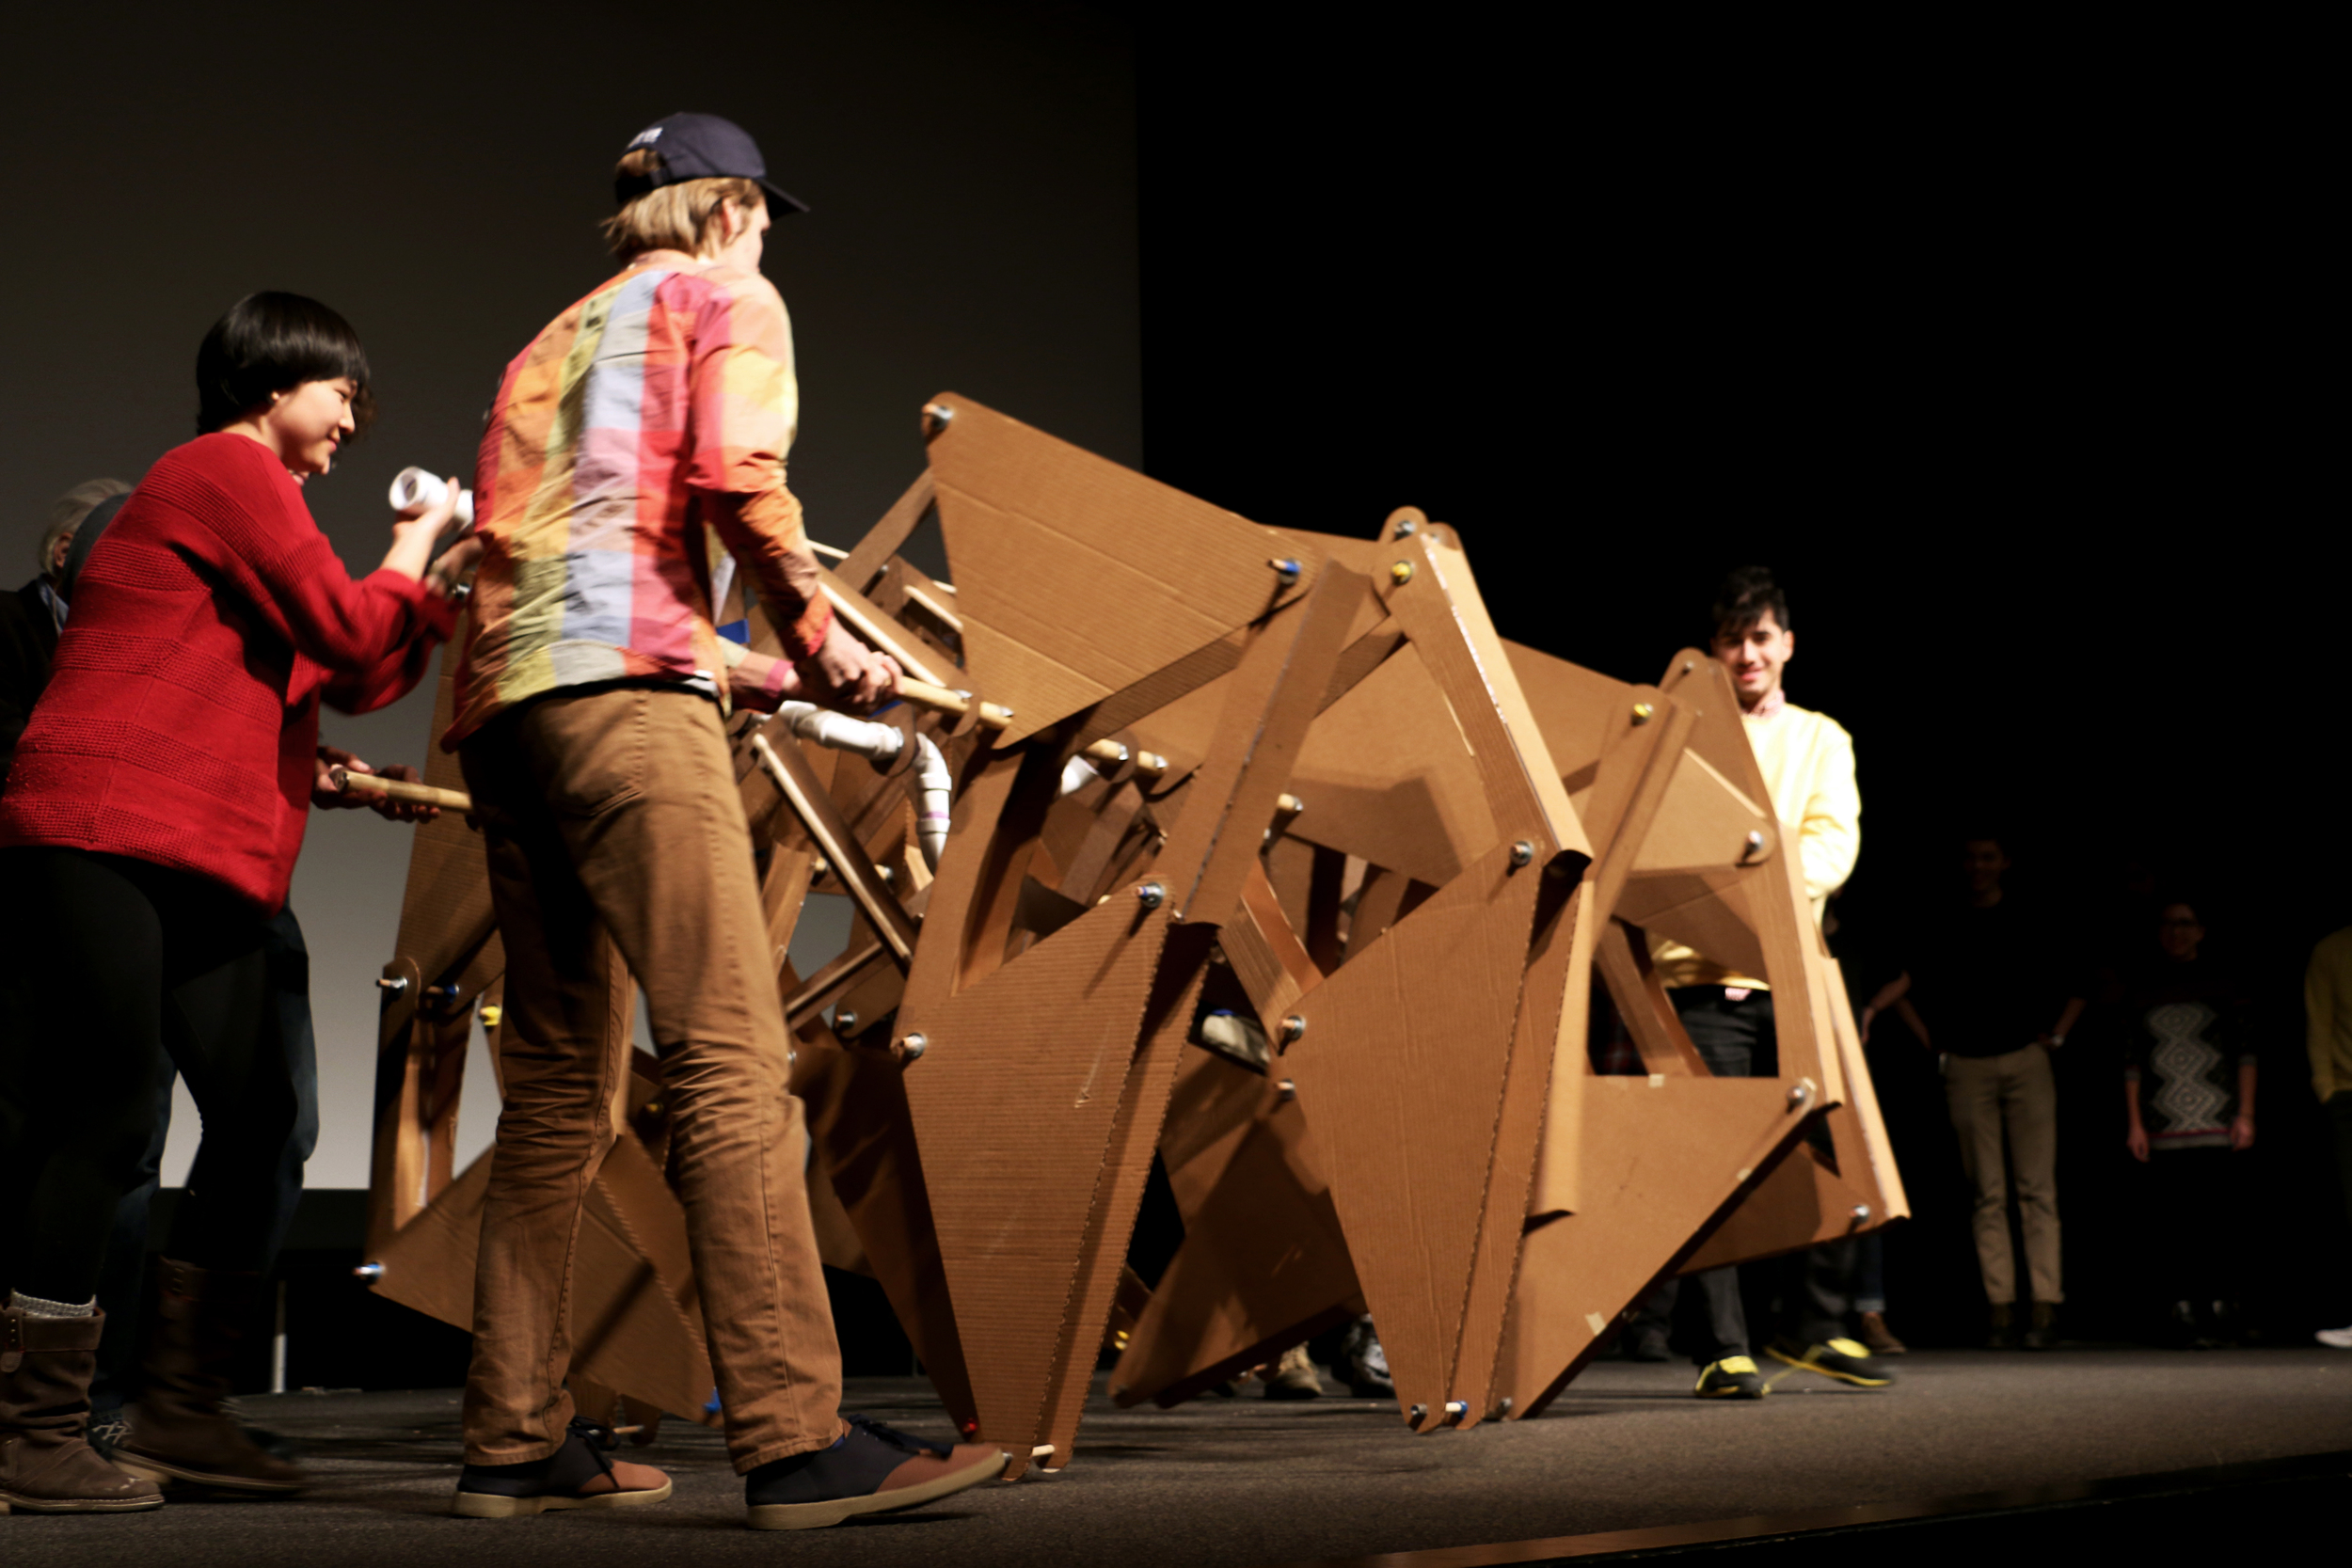 Brown + RISD STEAM presenting the Strandbeest at Theo Jansen's lecture